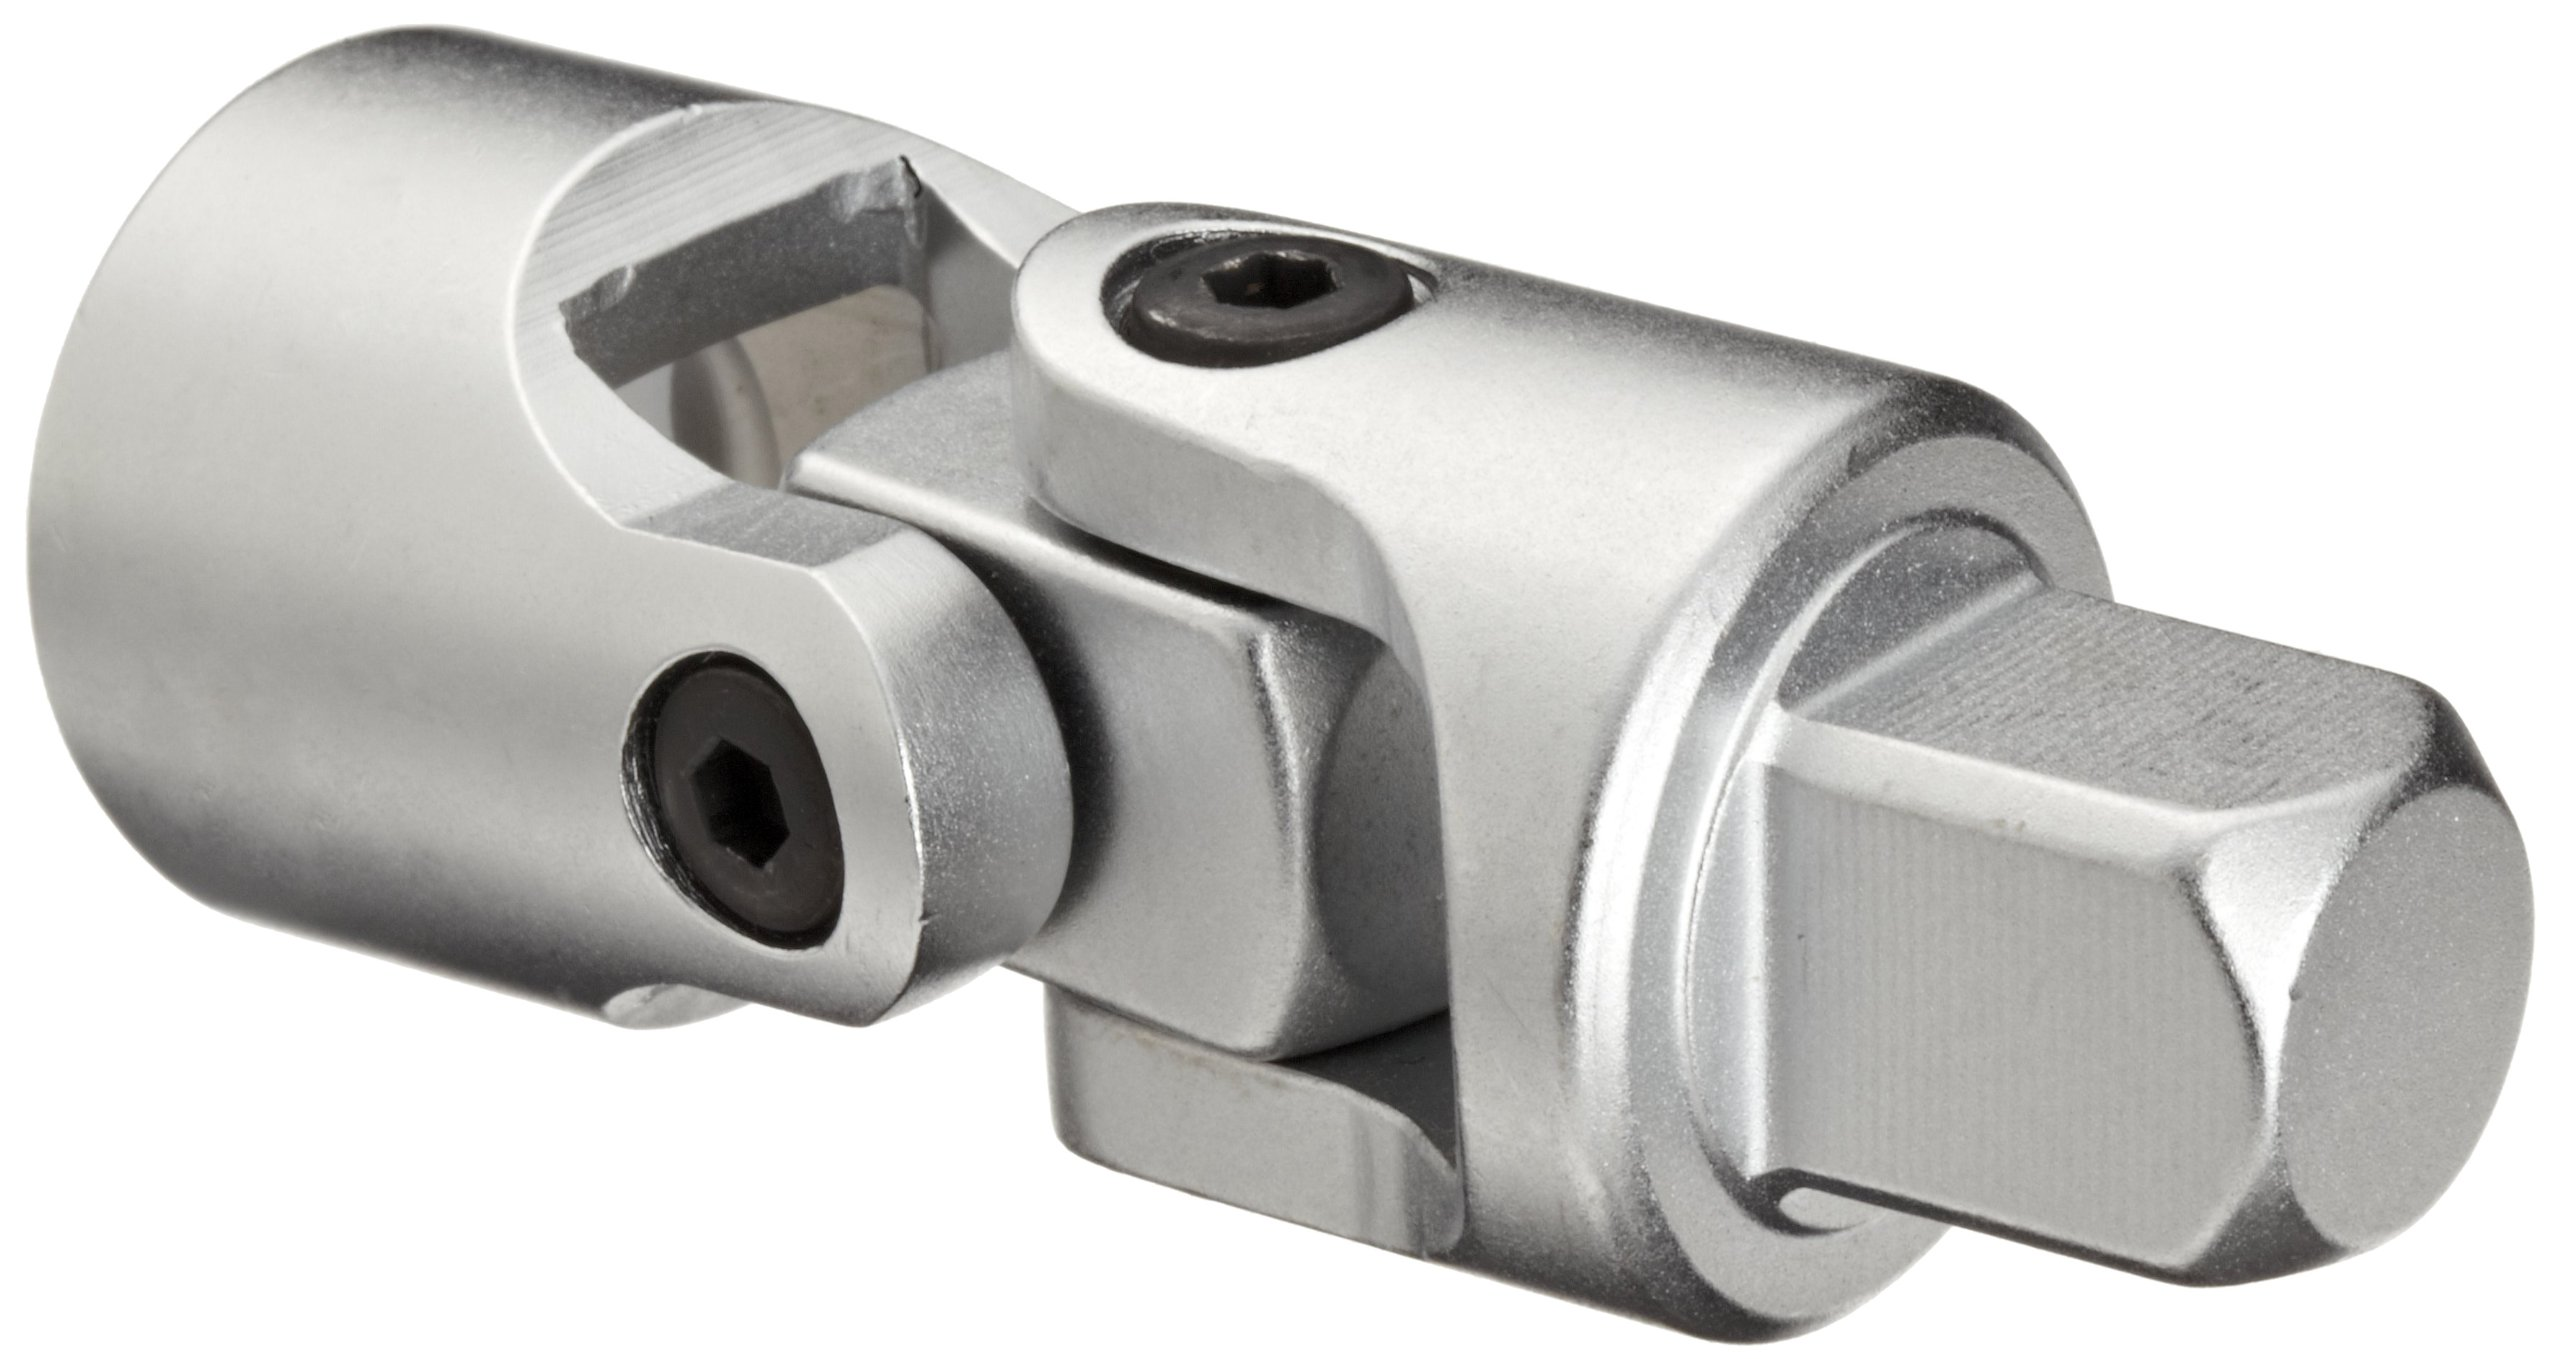 Wera Zyklop 8795 C Universal joint, Square drive 1/2'' x 69mm Universal Joint by Wera